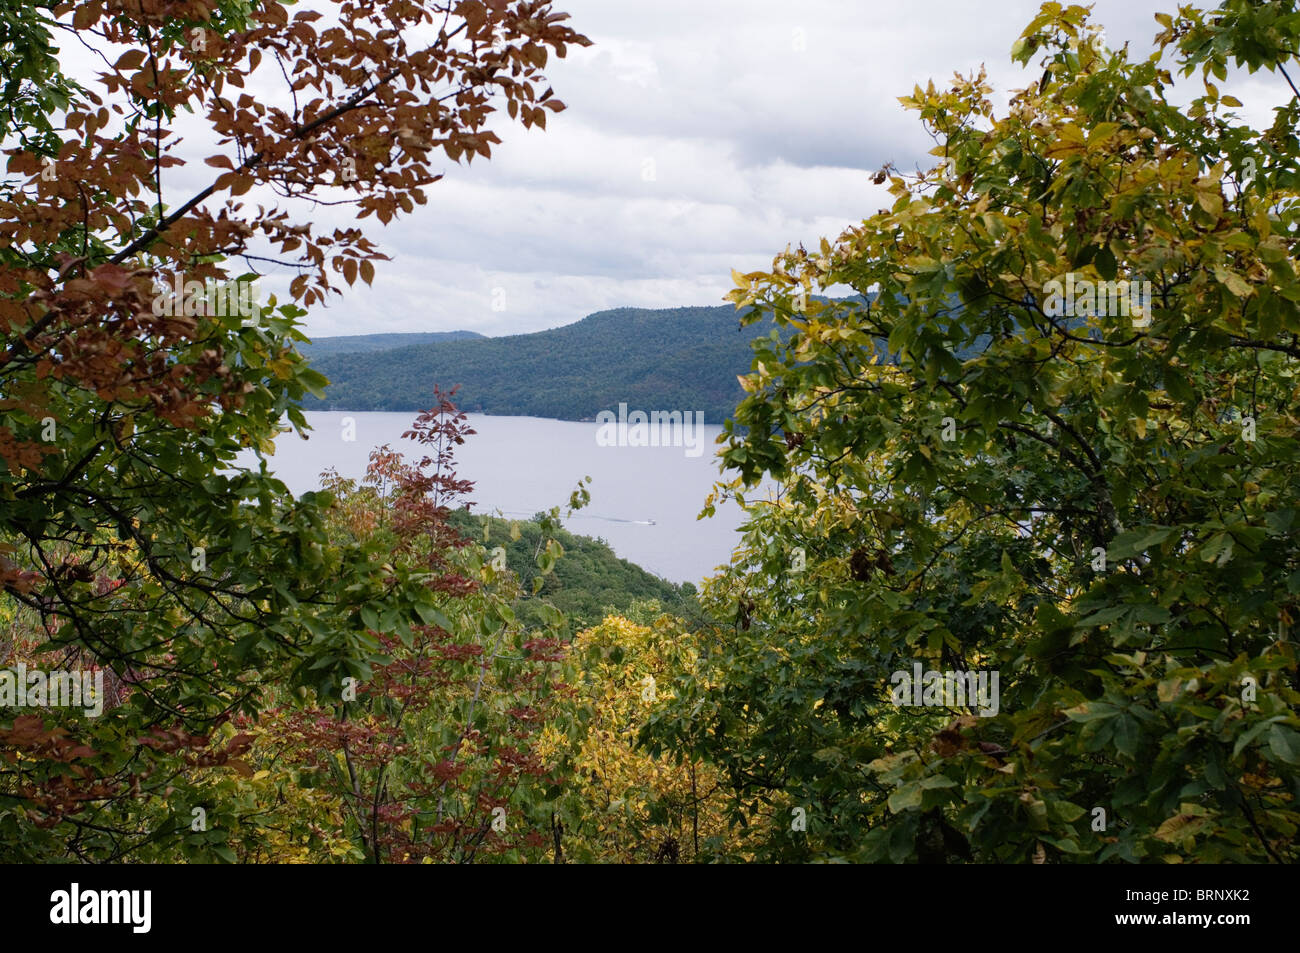 Fall foliage over Lake George, NY. - Stock Image